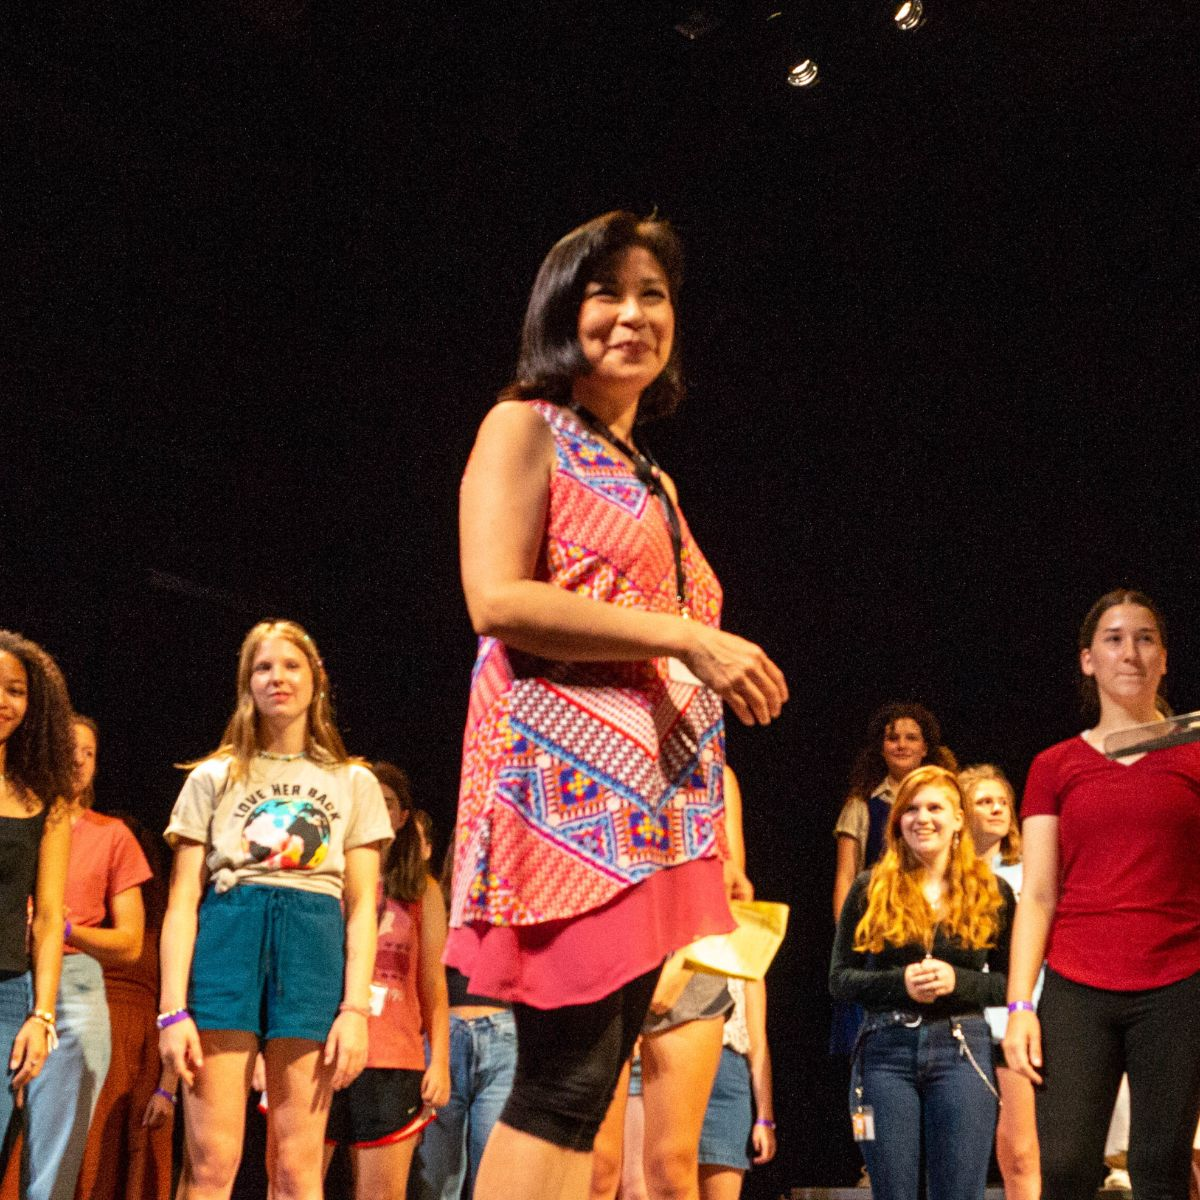 A person with dark hair and a headset mic stands in the spotlight on stage with rows of performers behind her